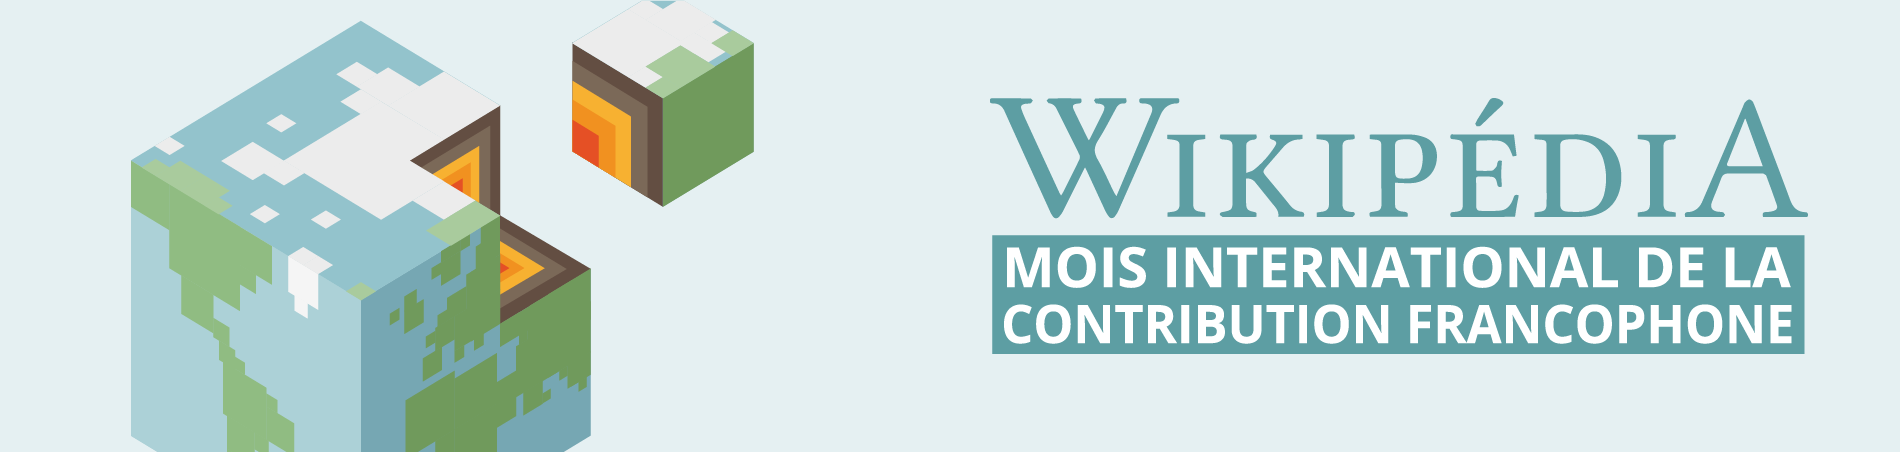 Mois international de la contribution francophone